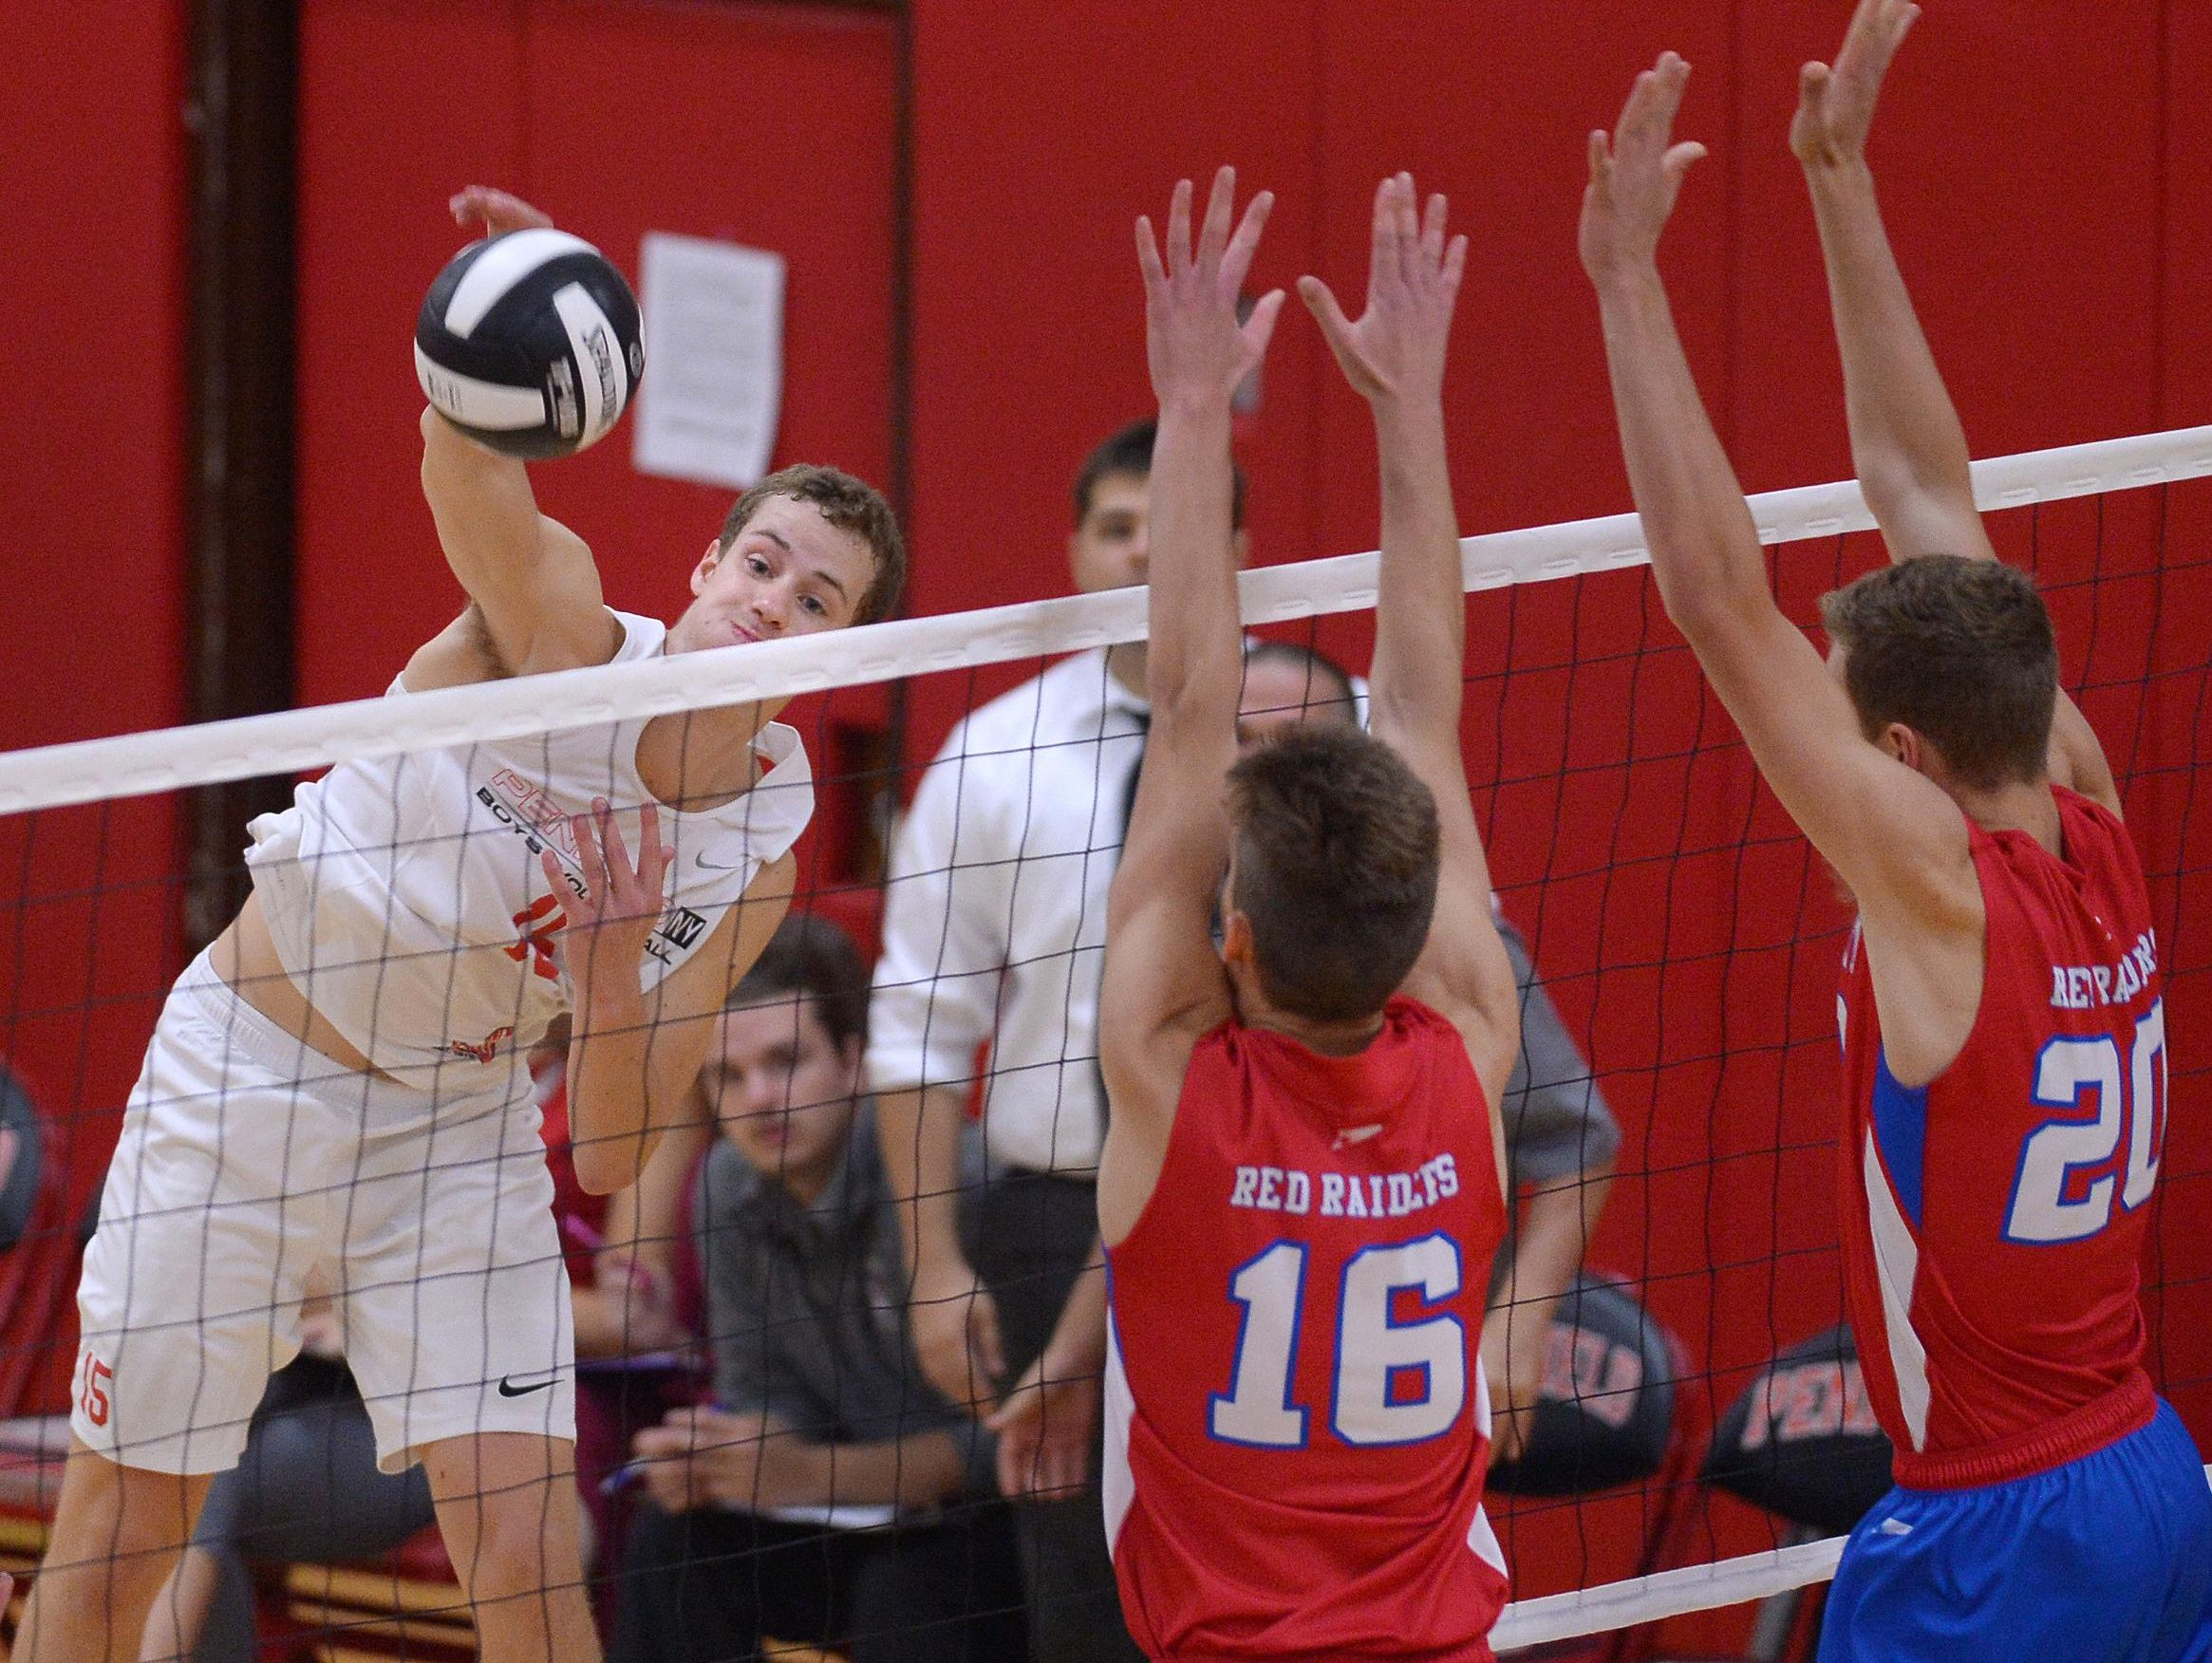 Penfield's Jack Bittker, left, hits by the block of Fairport's Mitch D'Agostino (16) and Garrett Vermeulen on Sept. 20. The Patriots won the match against Fairport in three games.